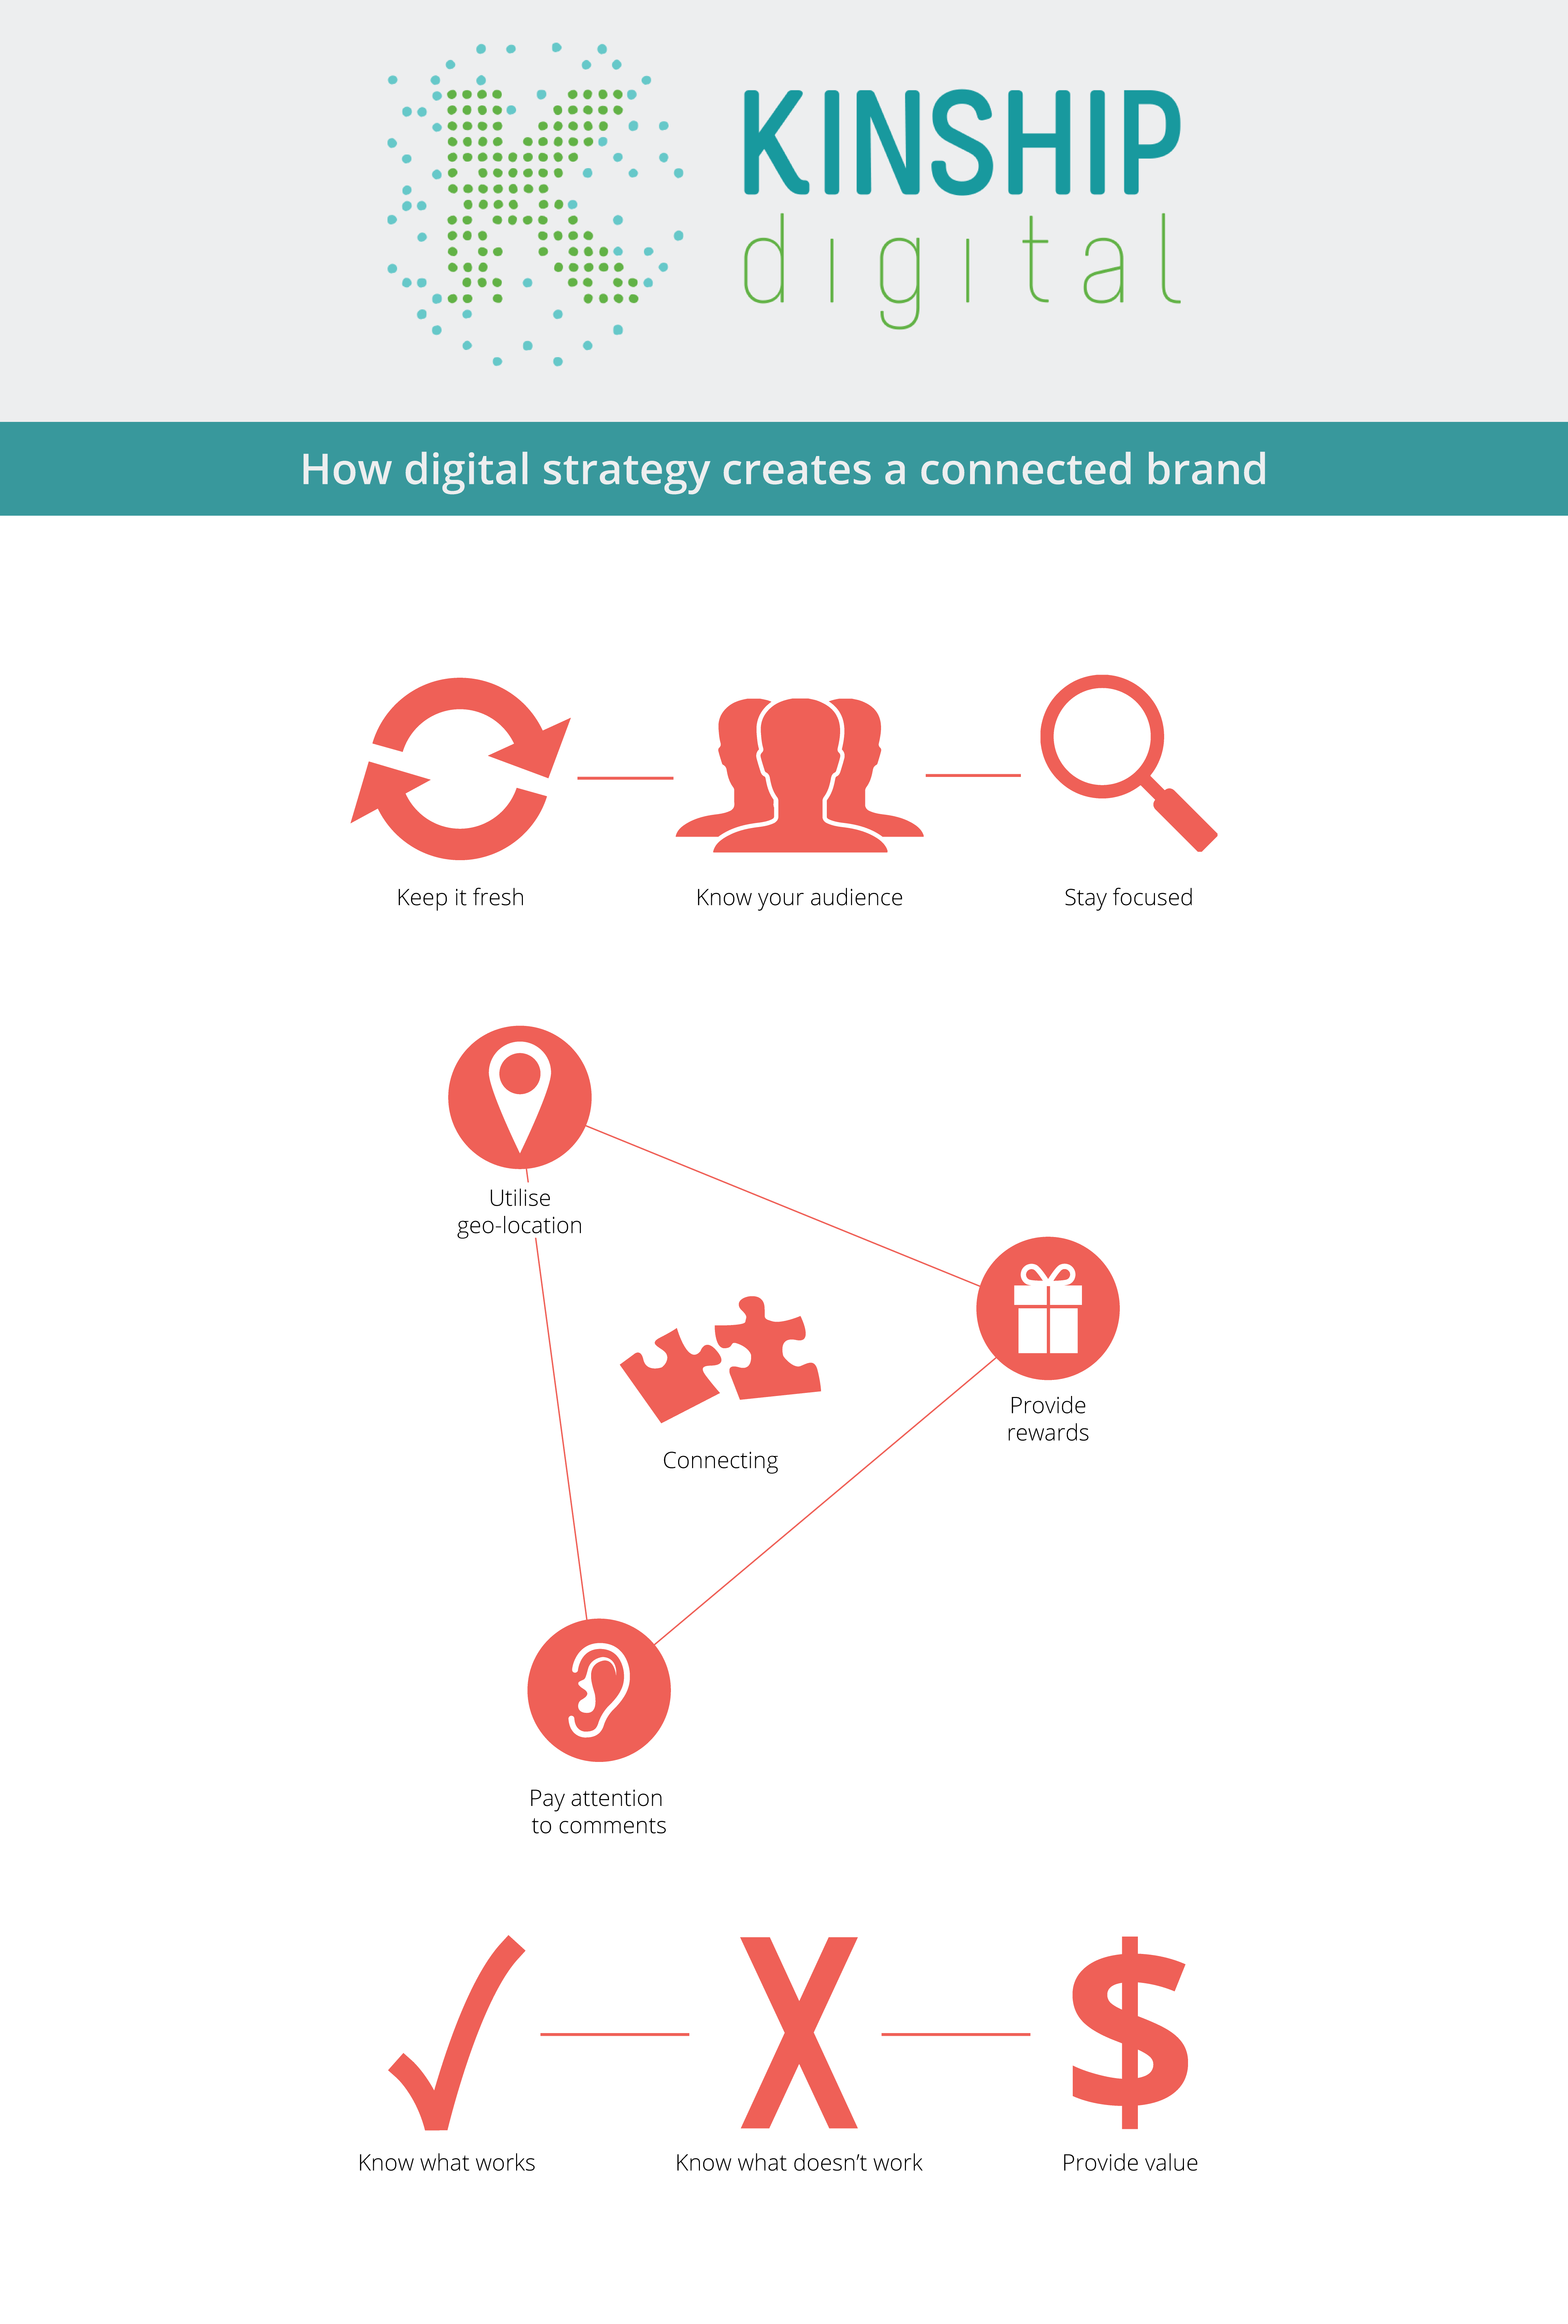 How digital strategy creates a connected brand infographic